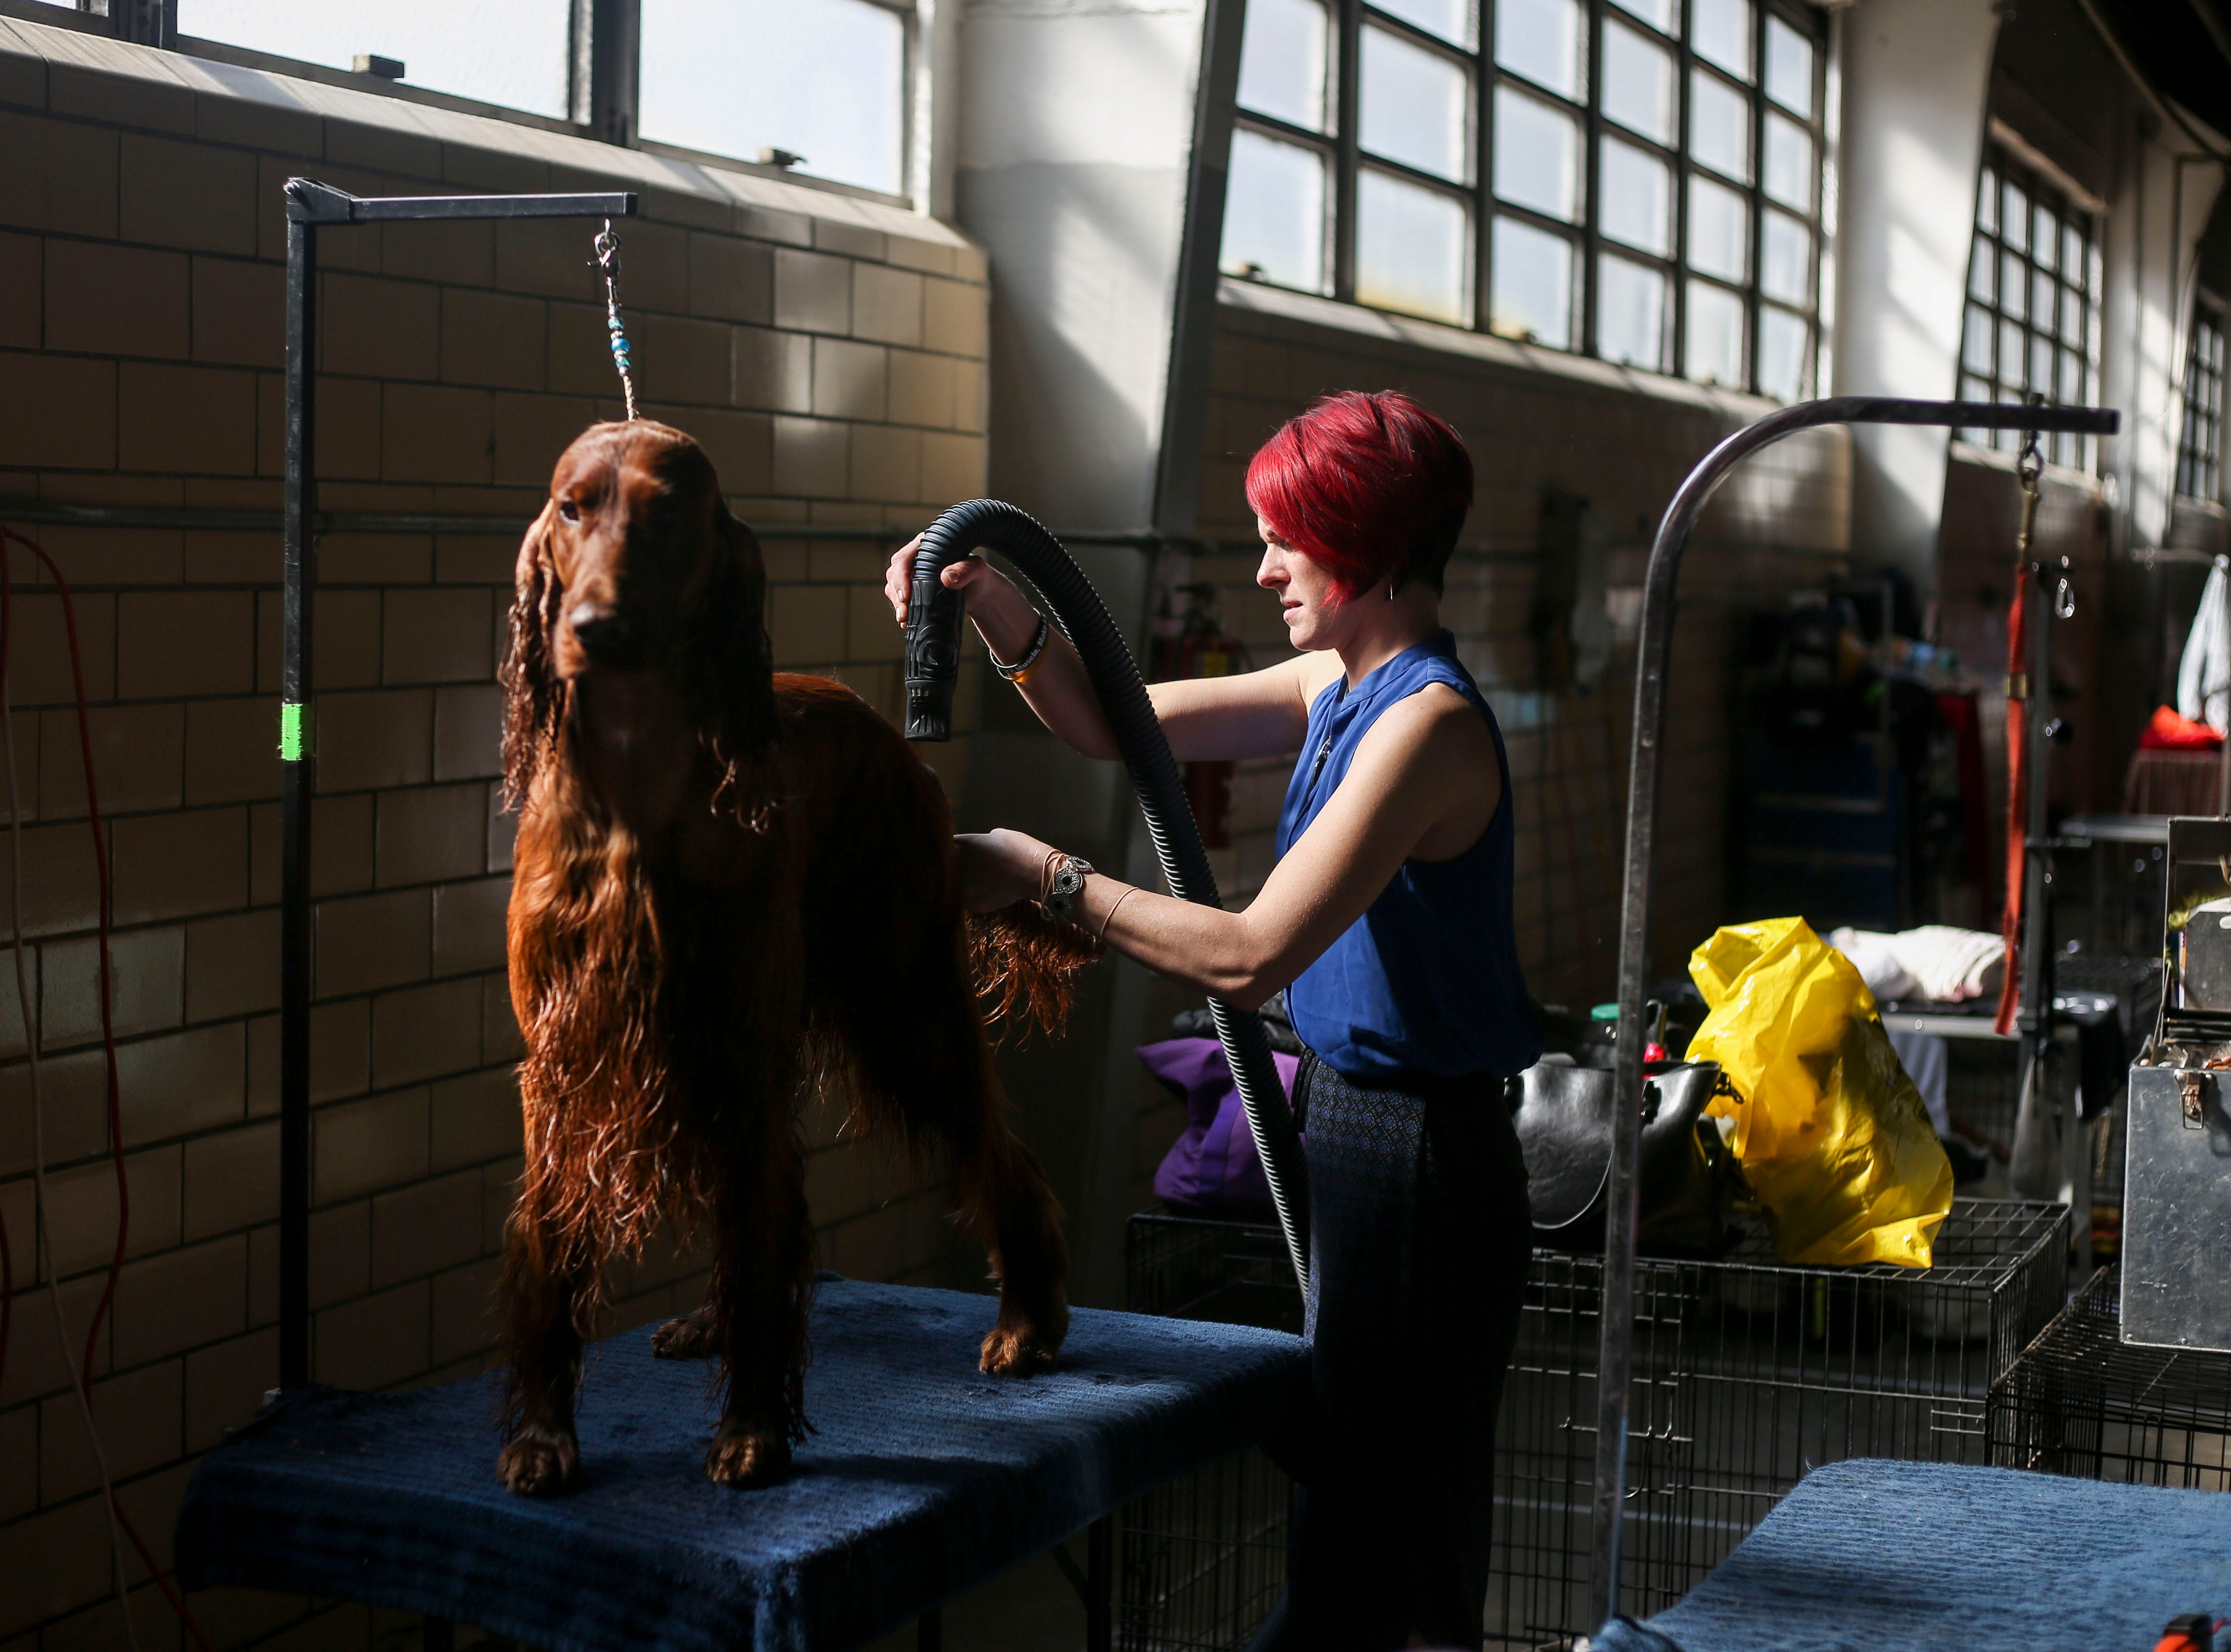 Liz Kaunzer grooms Hauken, a 3 year-old Irish setter, before competition during the Kentuckiana Cluster of Dog Shows at the Kentucky Fair and Exposition Center in Louisville, Ky. on Thursday, March 14, 2019.